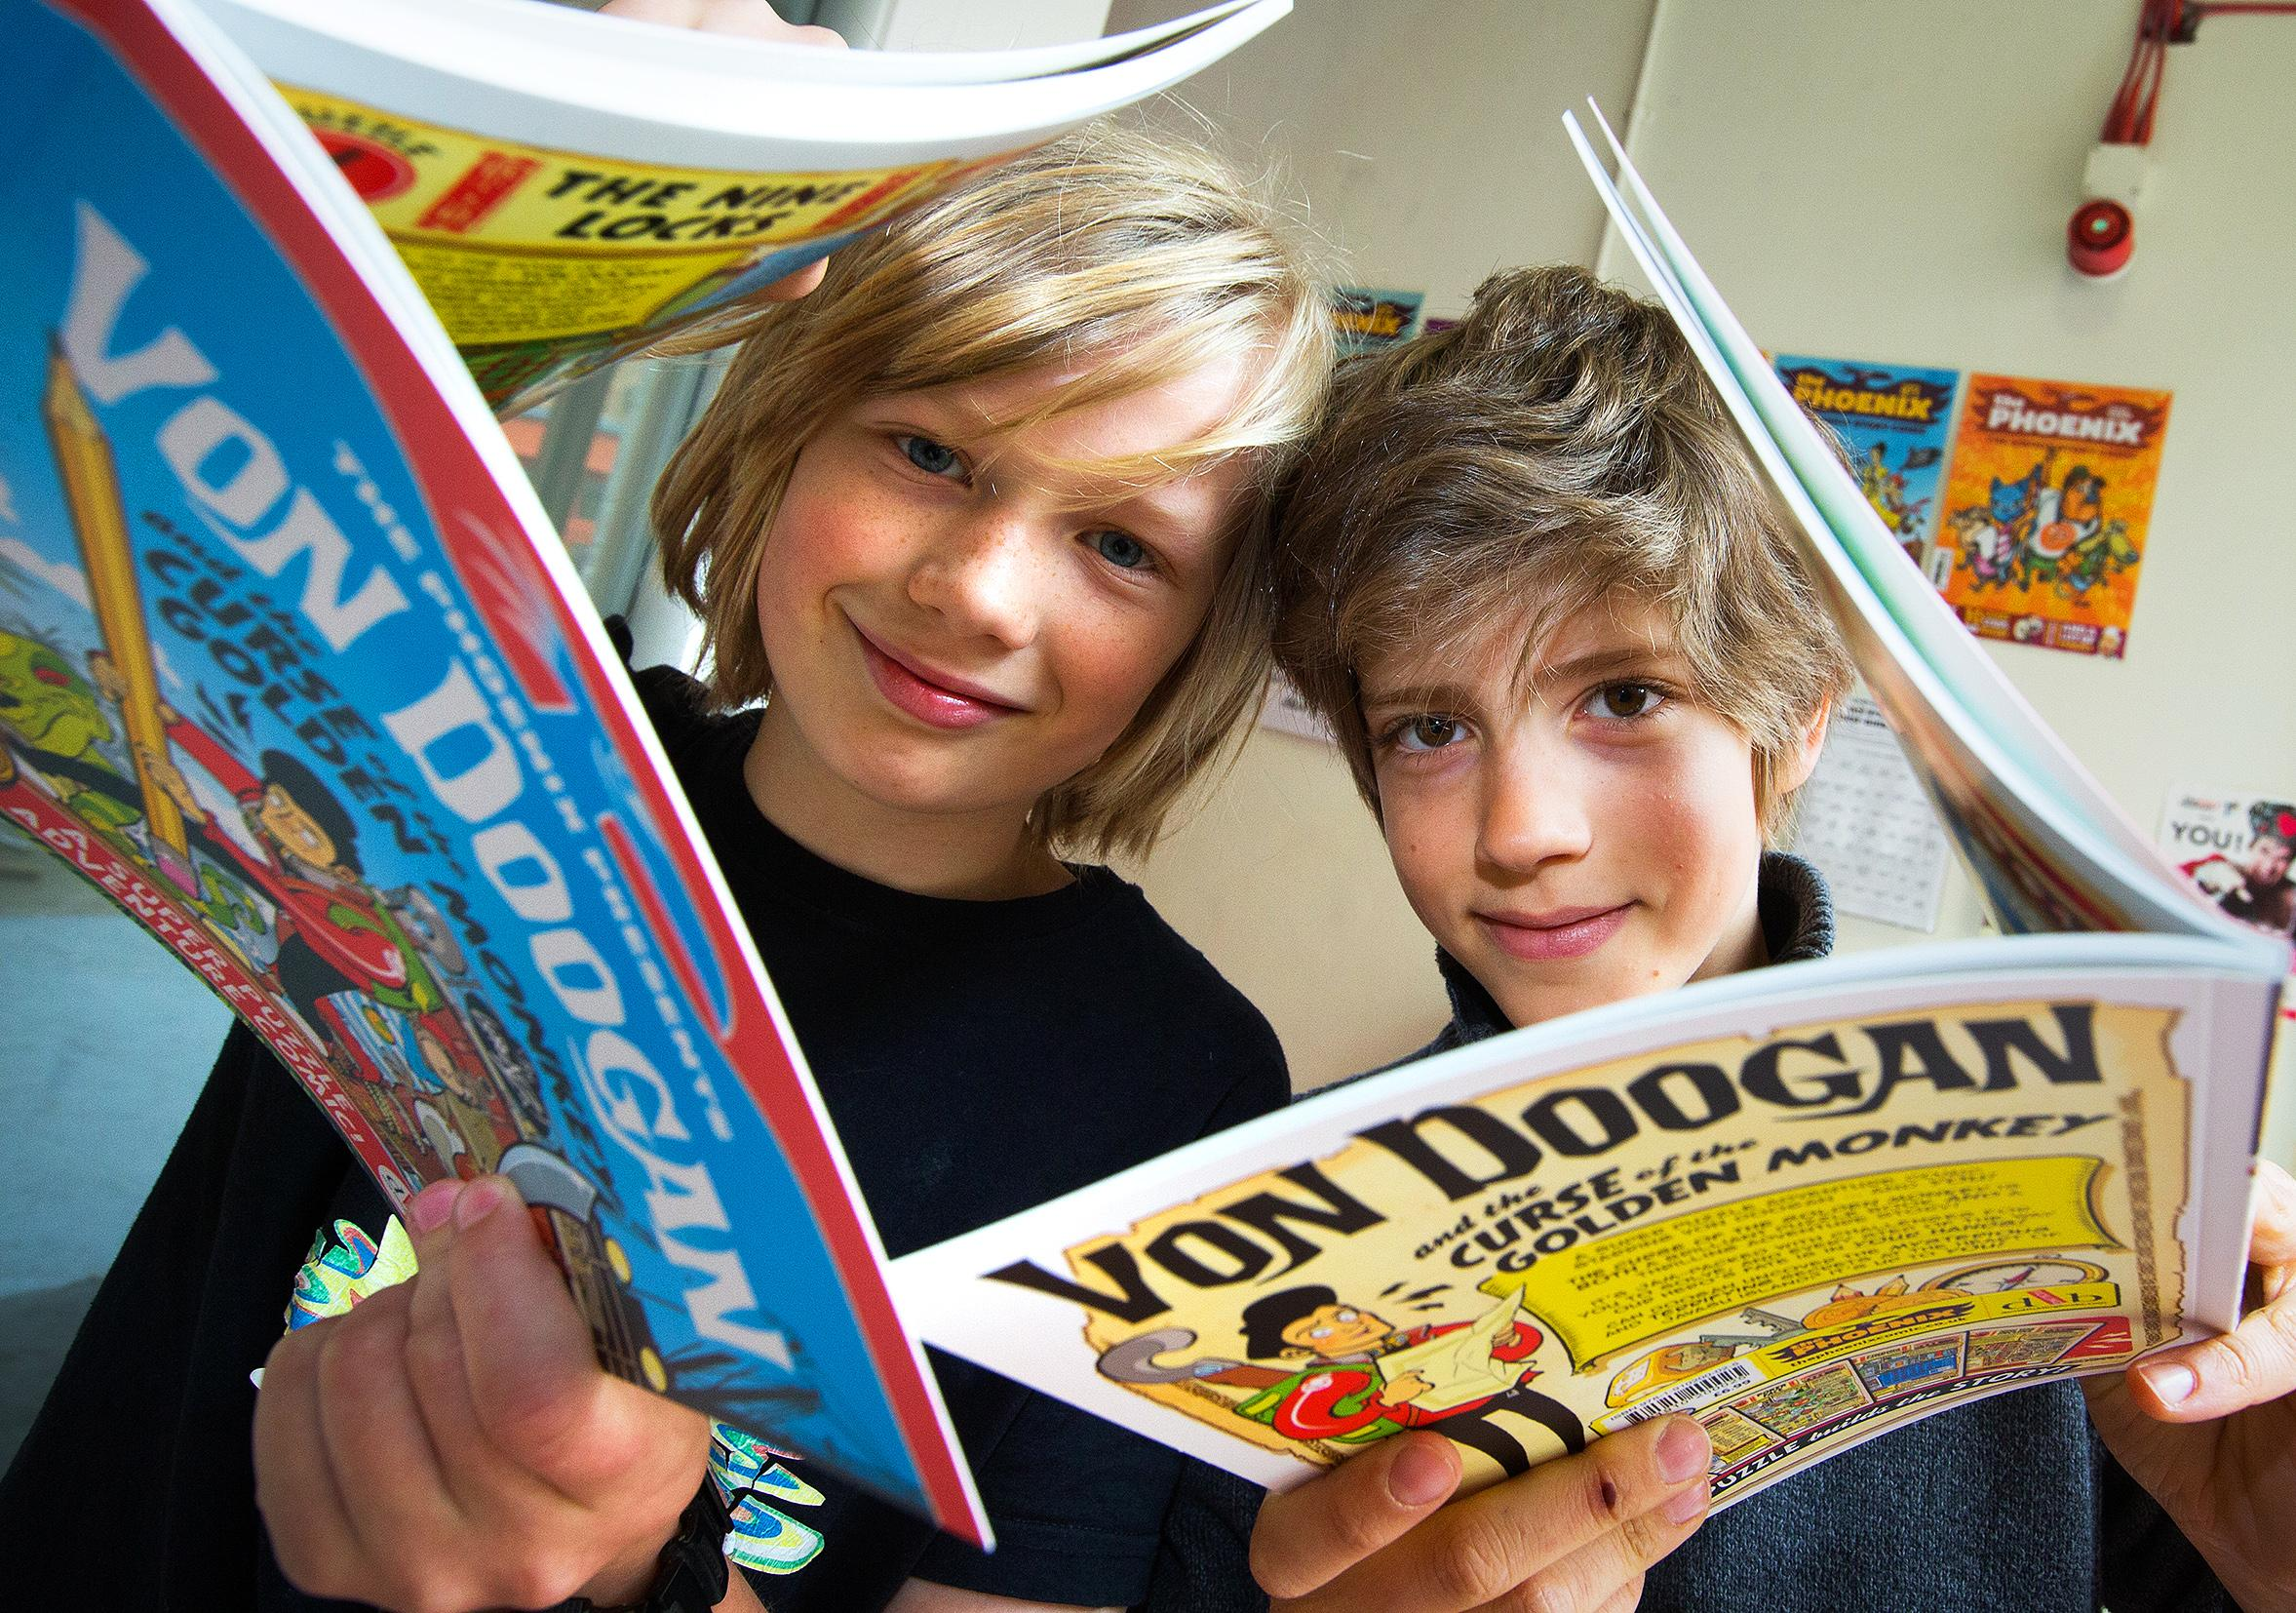 Keen: Alex Turner, 11, left, and Jules Reuter, 10, with their comics at the Story Museum event